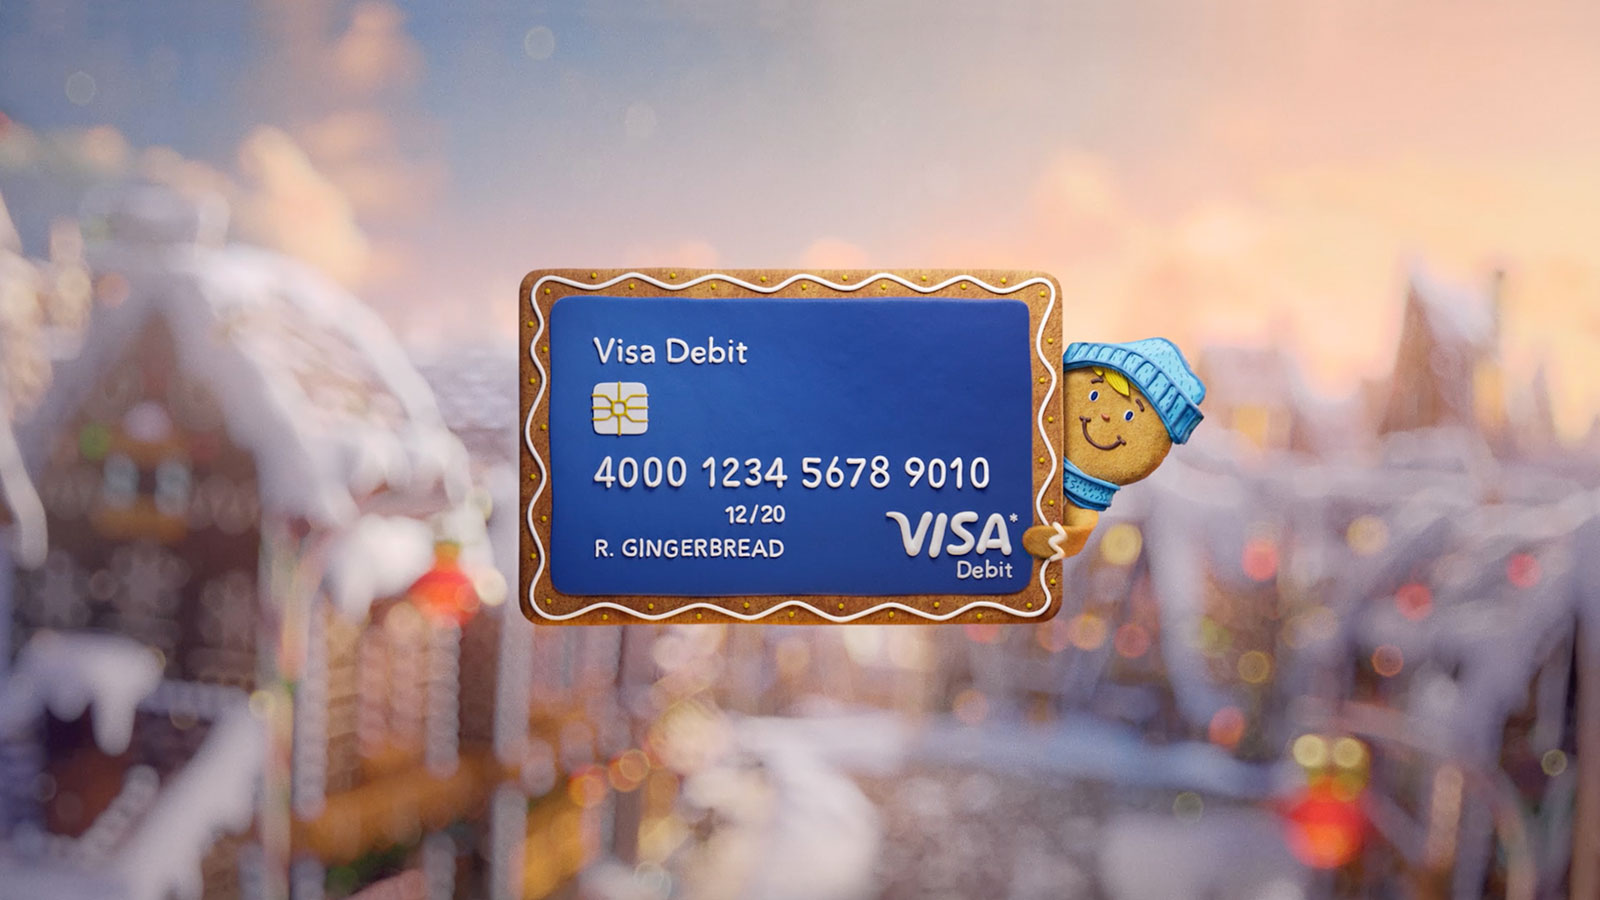 Visa debit card floating in front of a winter scene being held by a gingerbread man.